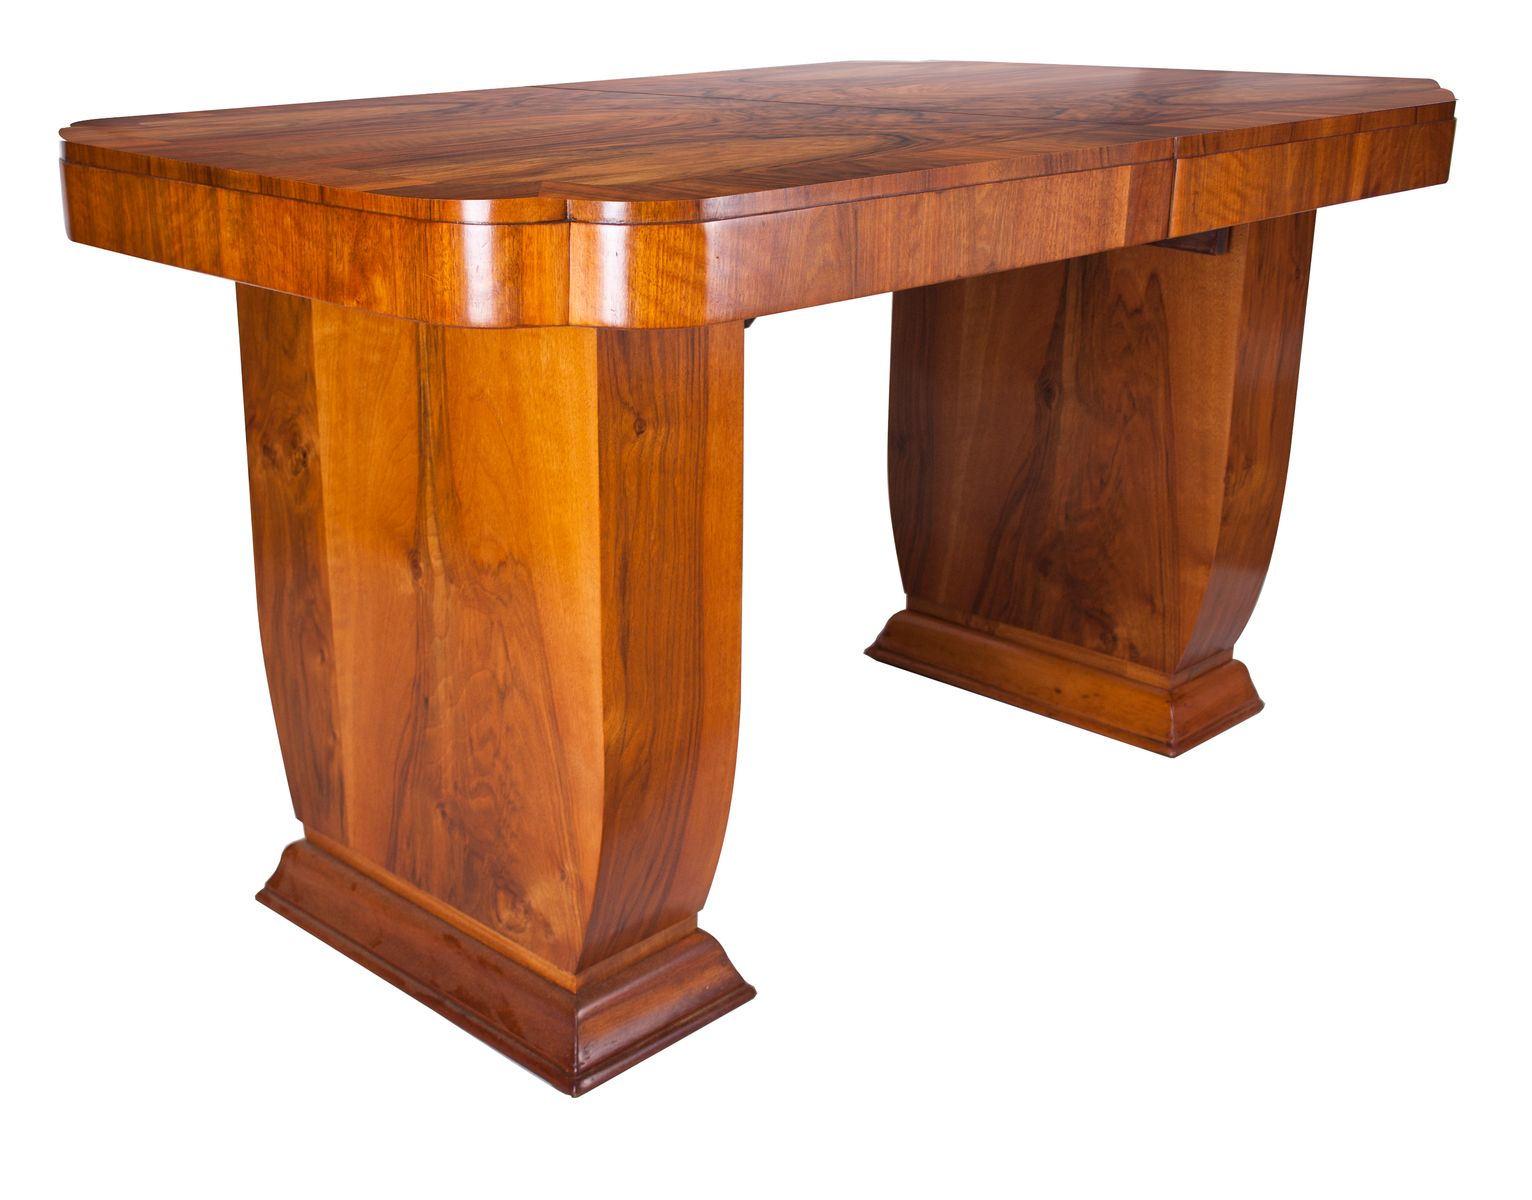 Art deco walnut dining table 1930s for sale at pamono - Table de nuit art deco ...